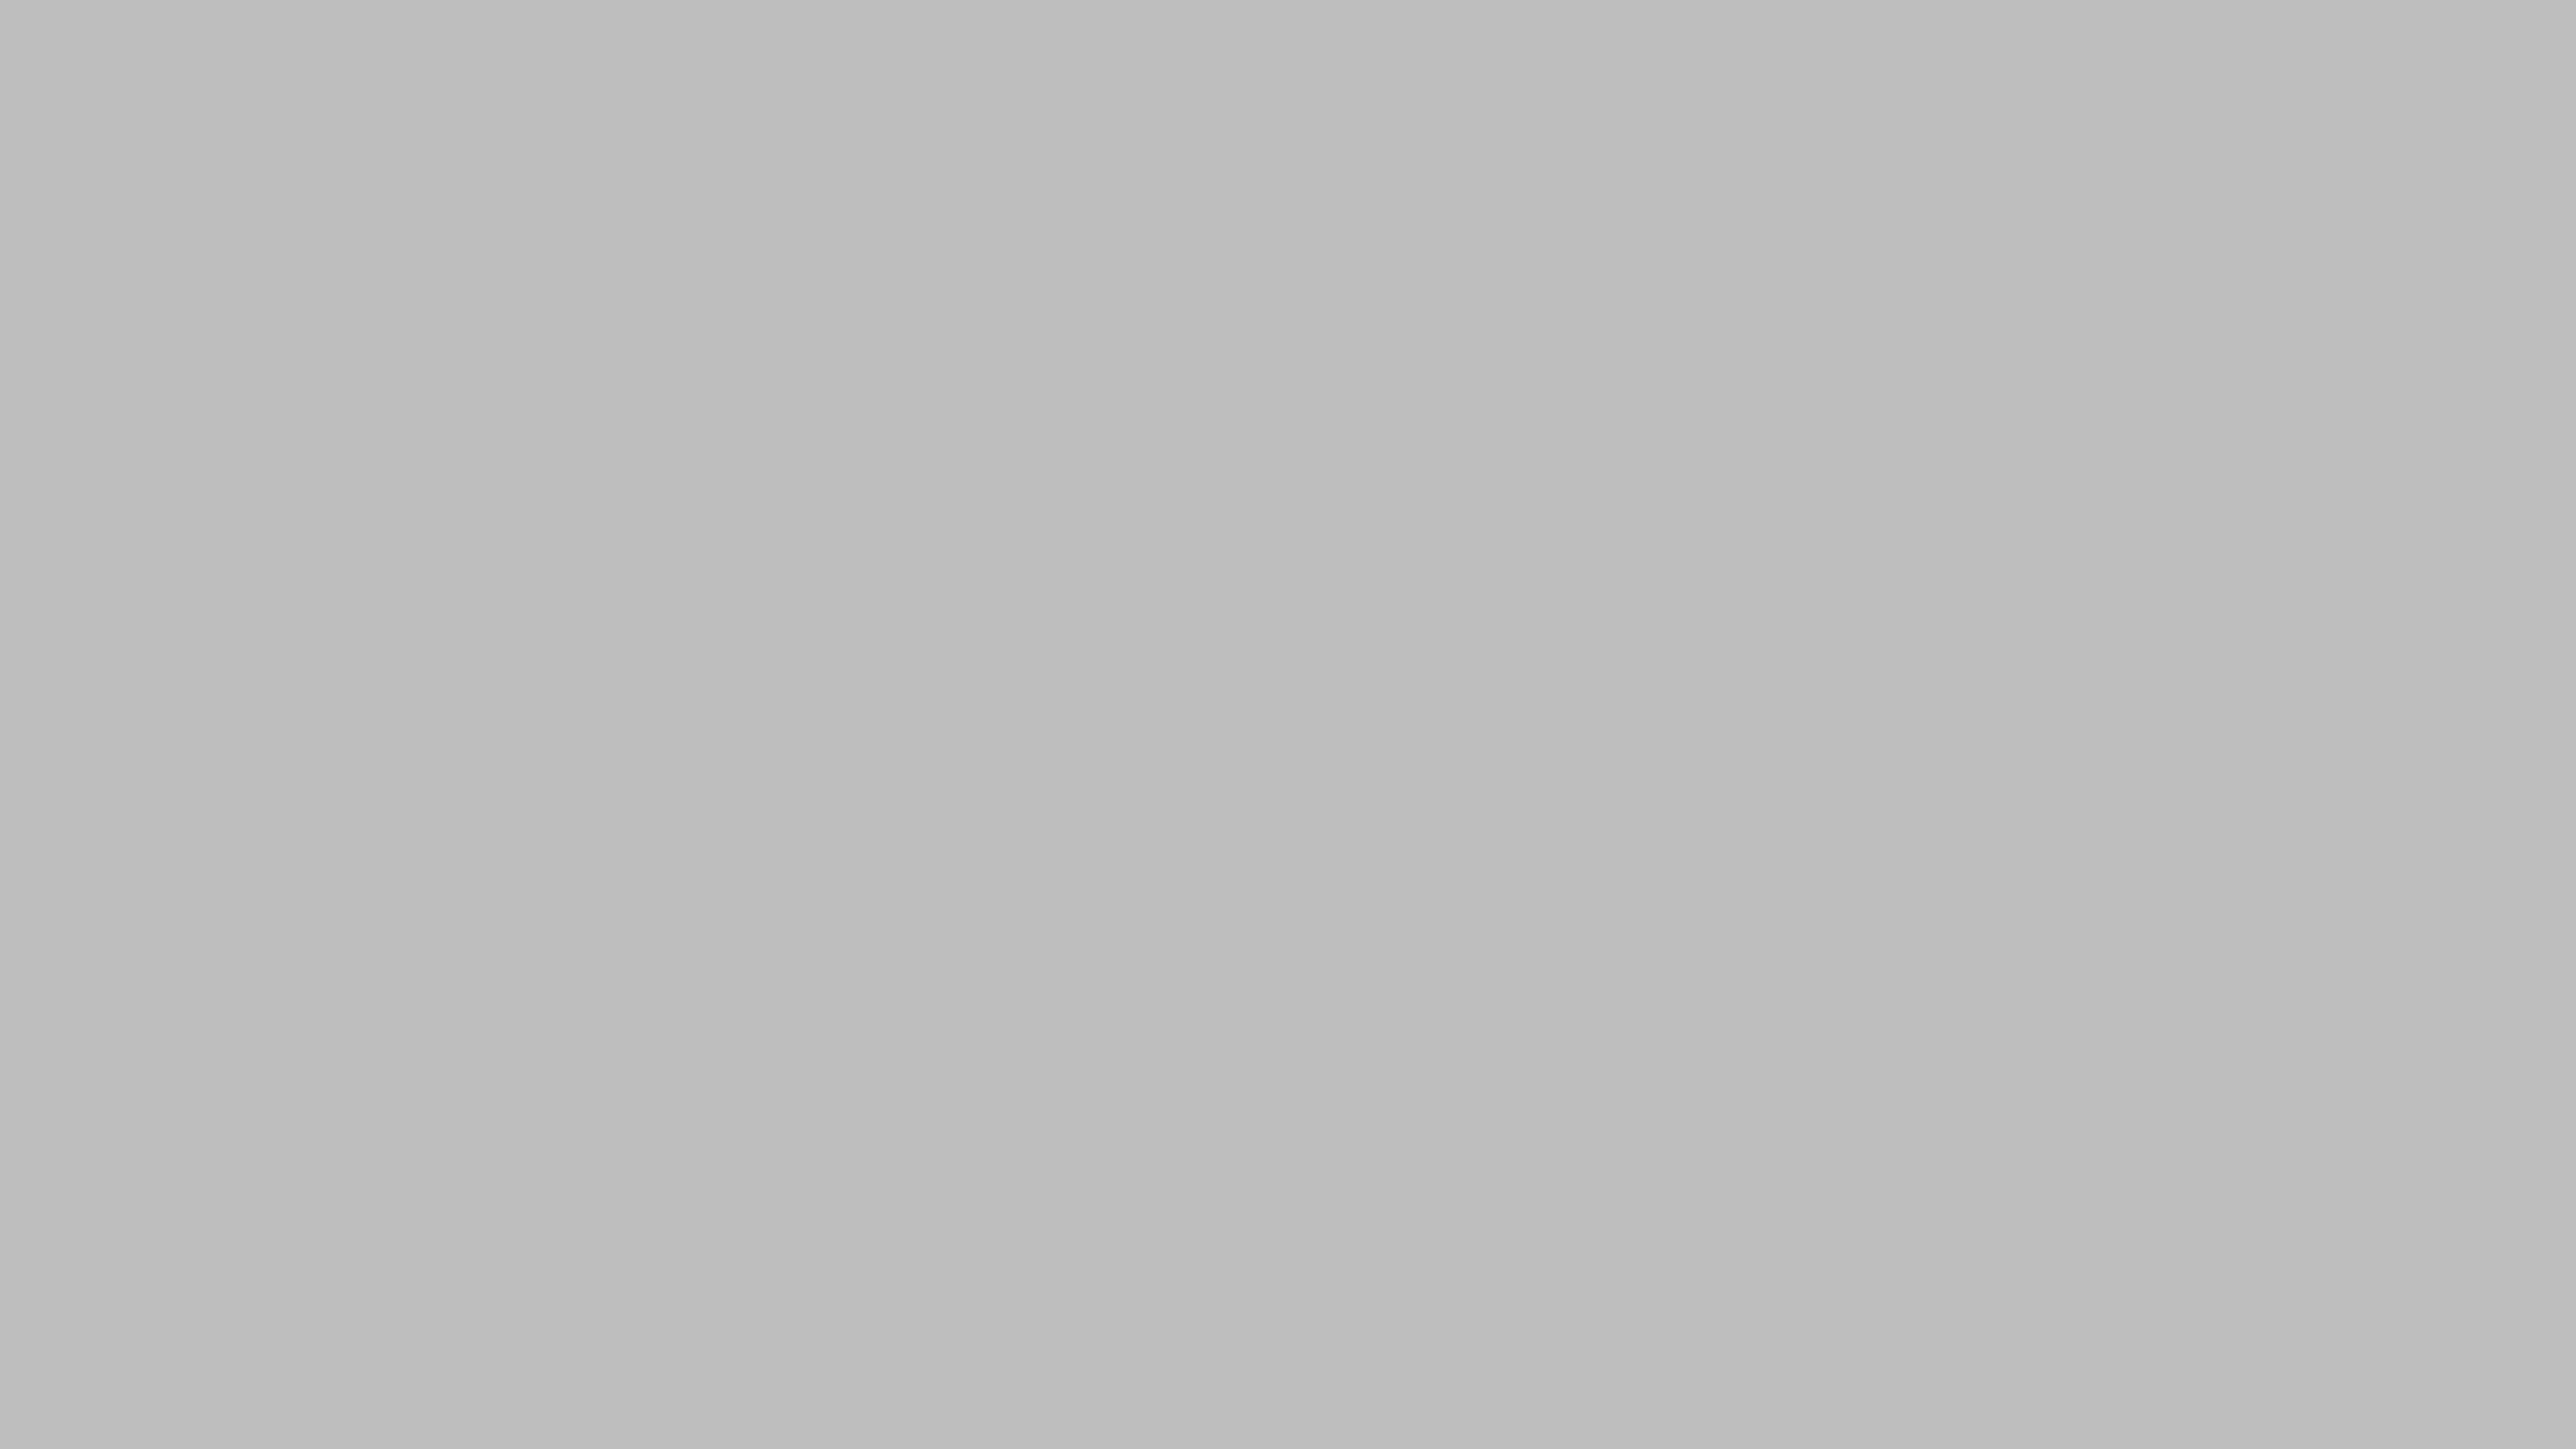 5120x2880 Gray X11 Gui Gray Solid Color Background